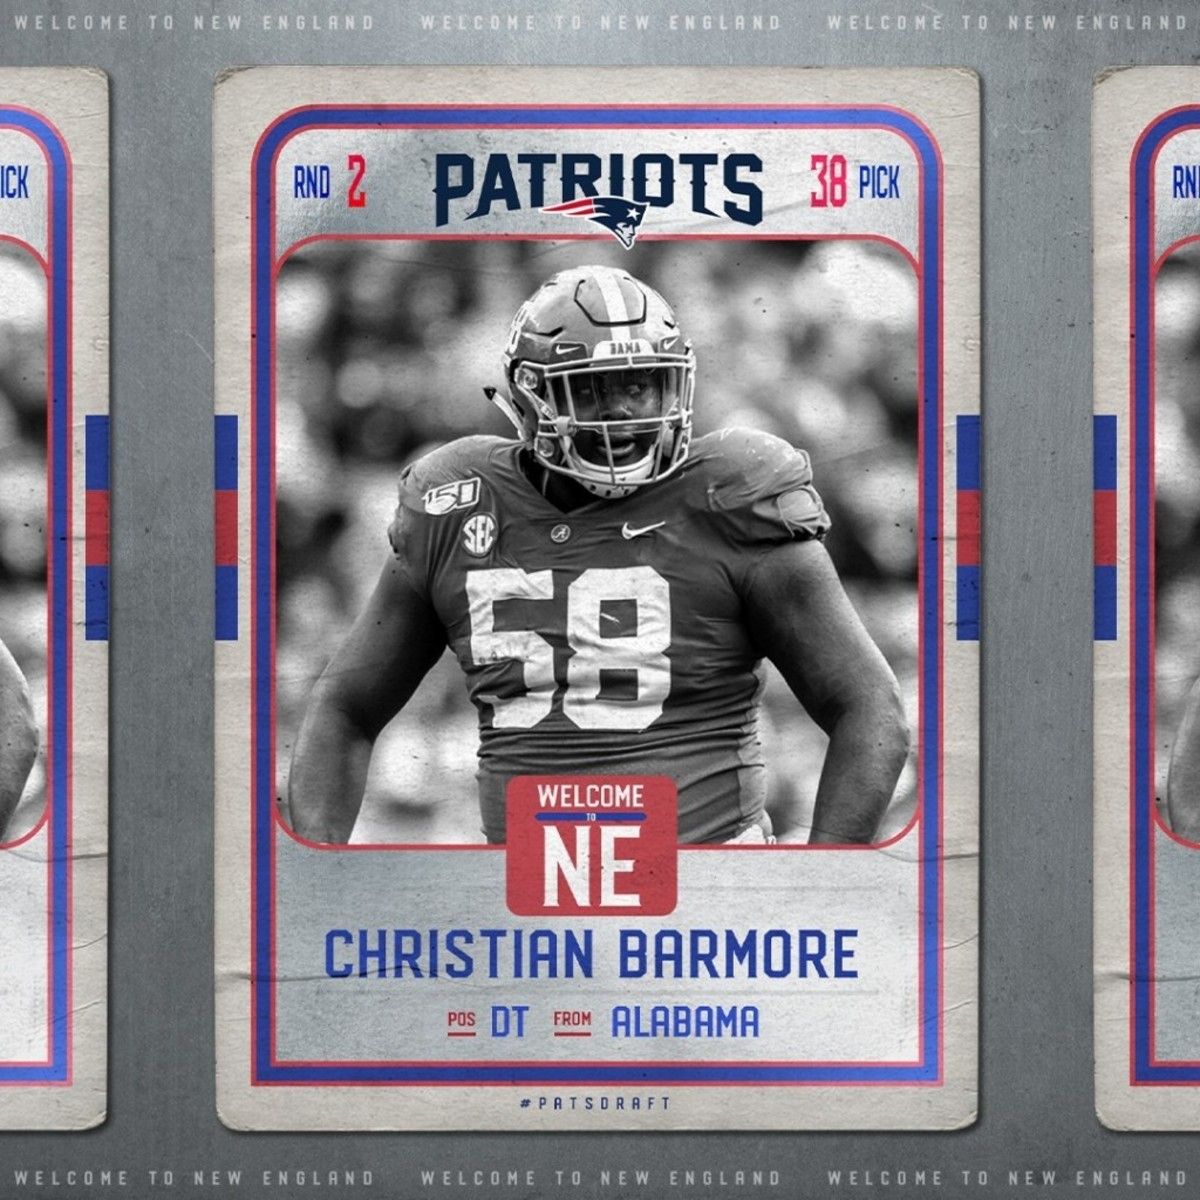 The Patriots trade up in the draft to grab Mac Jones' teammate and highly scouted prospect Christian Barmore with the 38th pick in the second round.